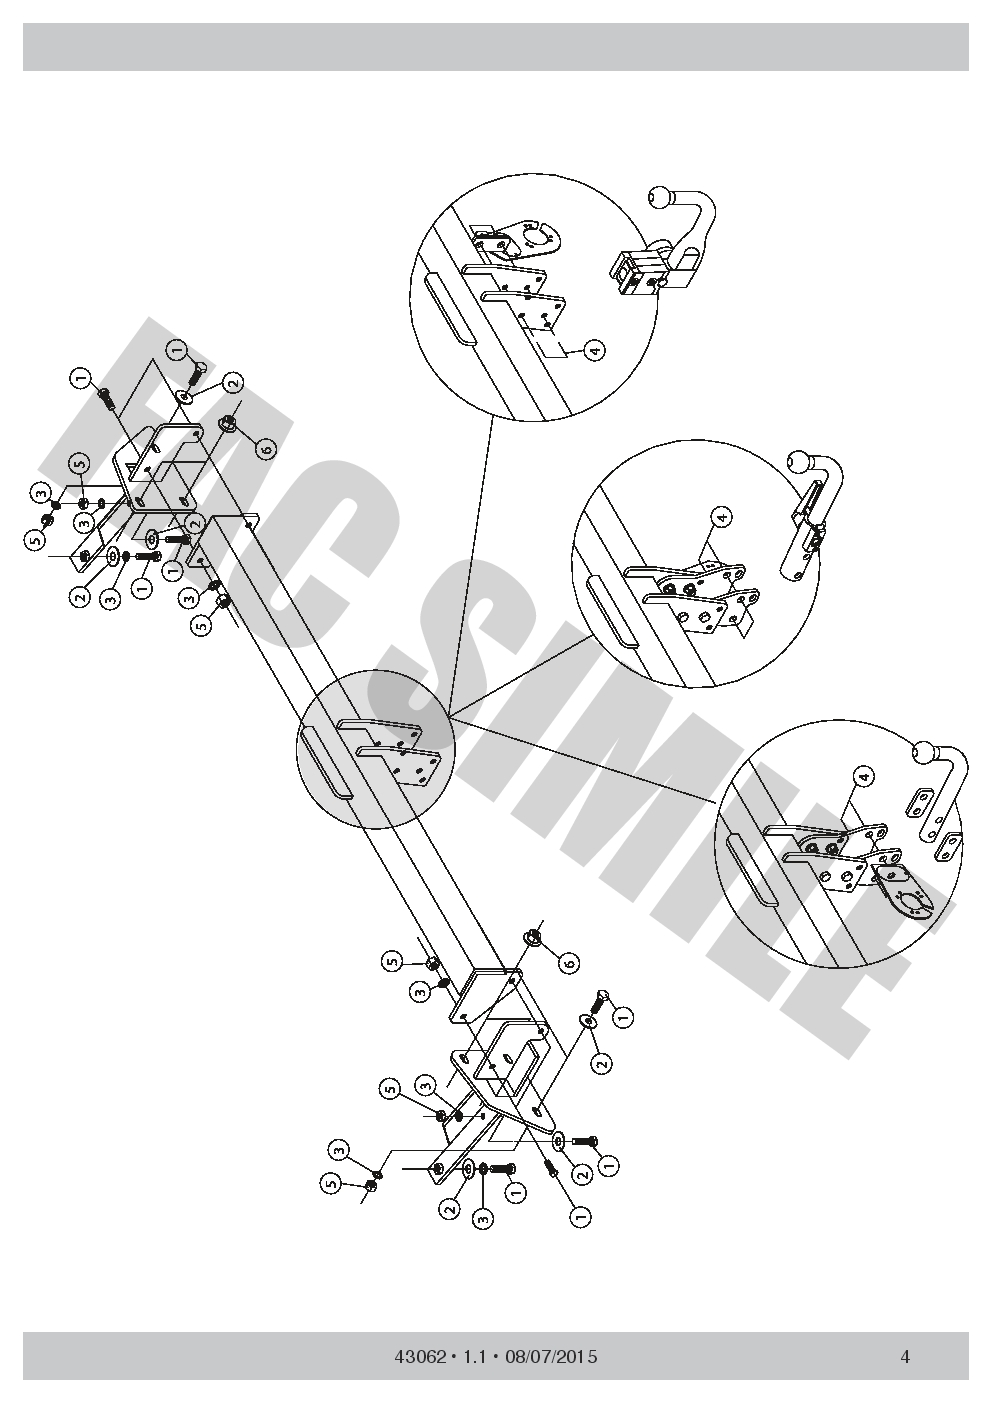 Bola Remolque Vertical Desmontable para VW CADDY IV Kit C2 13 Pin 15 43062VM/_A3